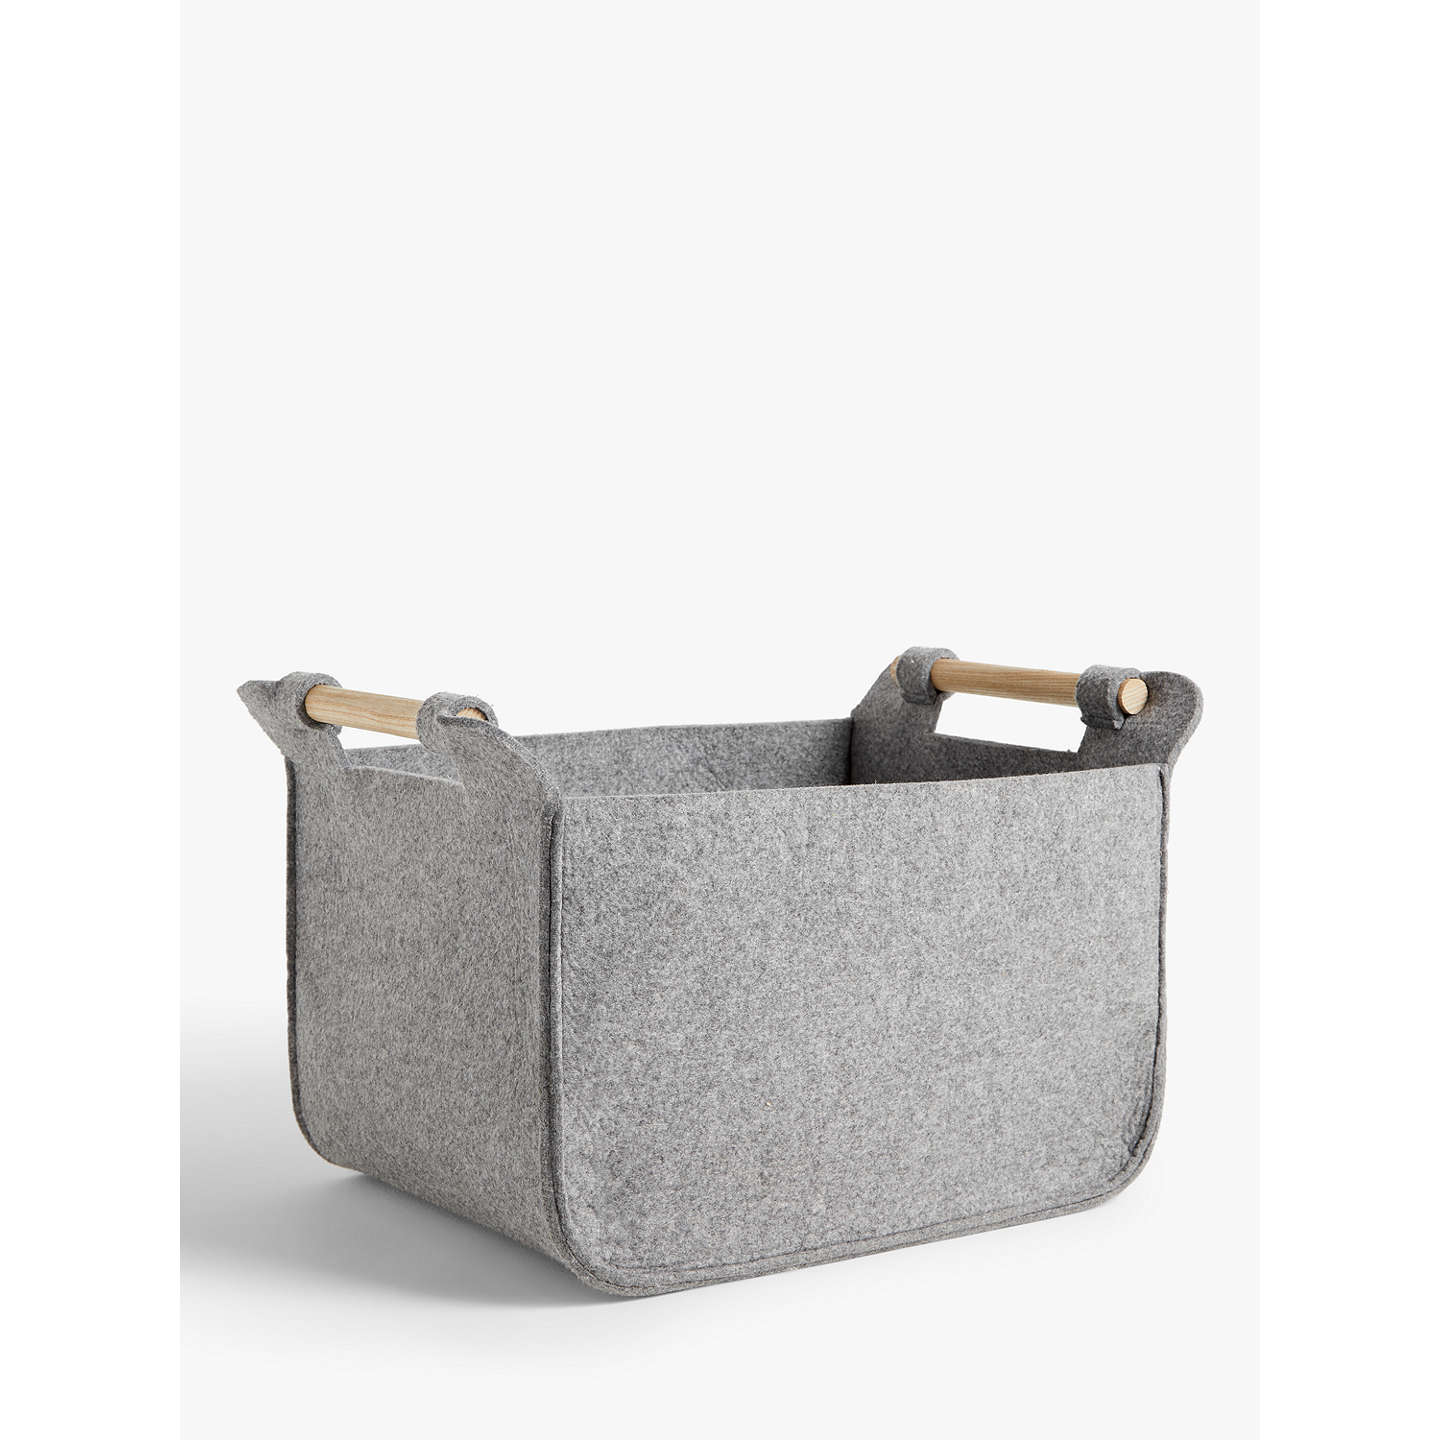 BuyJohn Lewis Grey Felt Storage Basket with Ash Handles Online at johnlewis.com